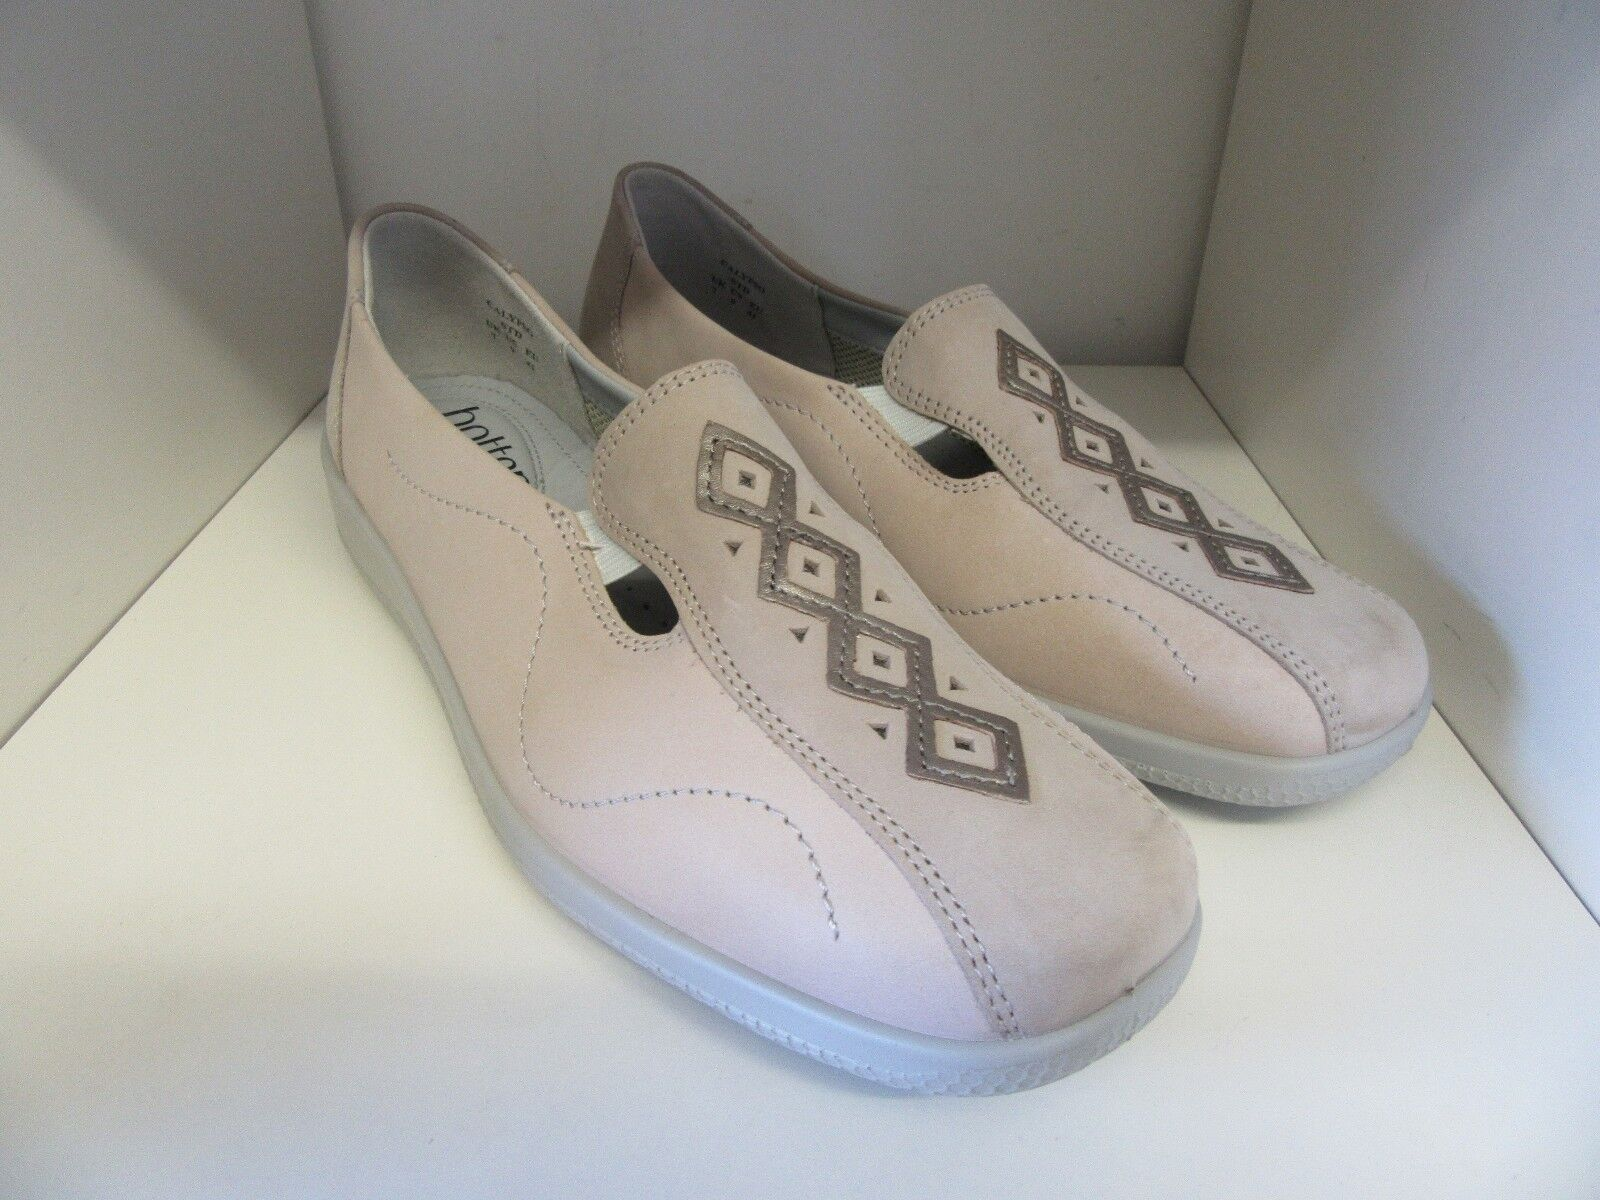 HOTTER CALYPSO BEIGE NUBUCK LEATHER SHOE SIZE 7 STANDARD - BRAND NEW